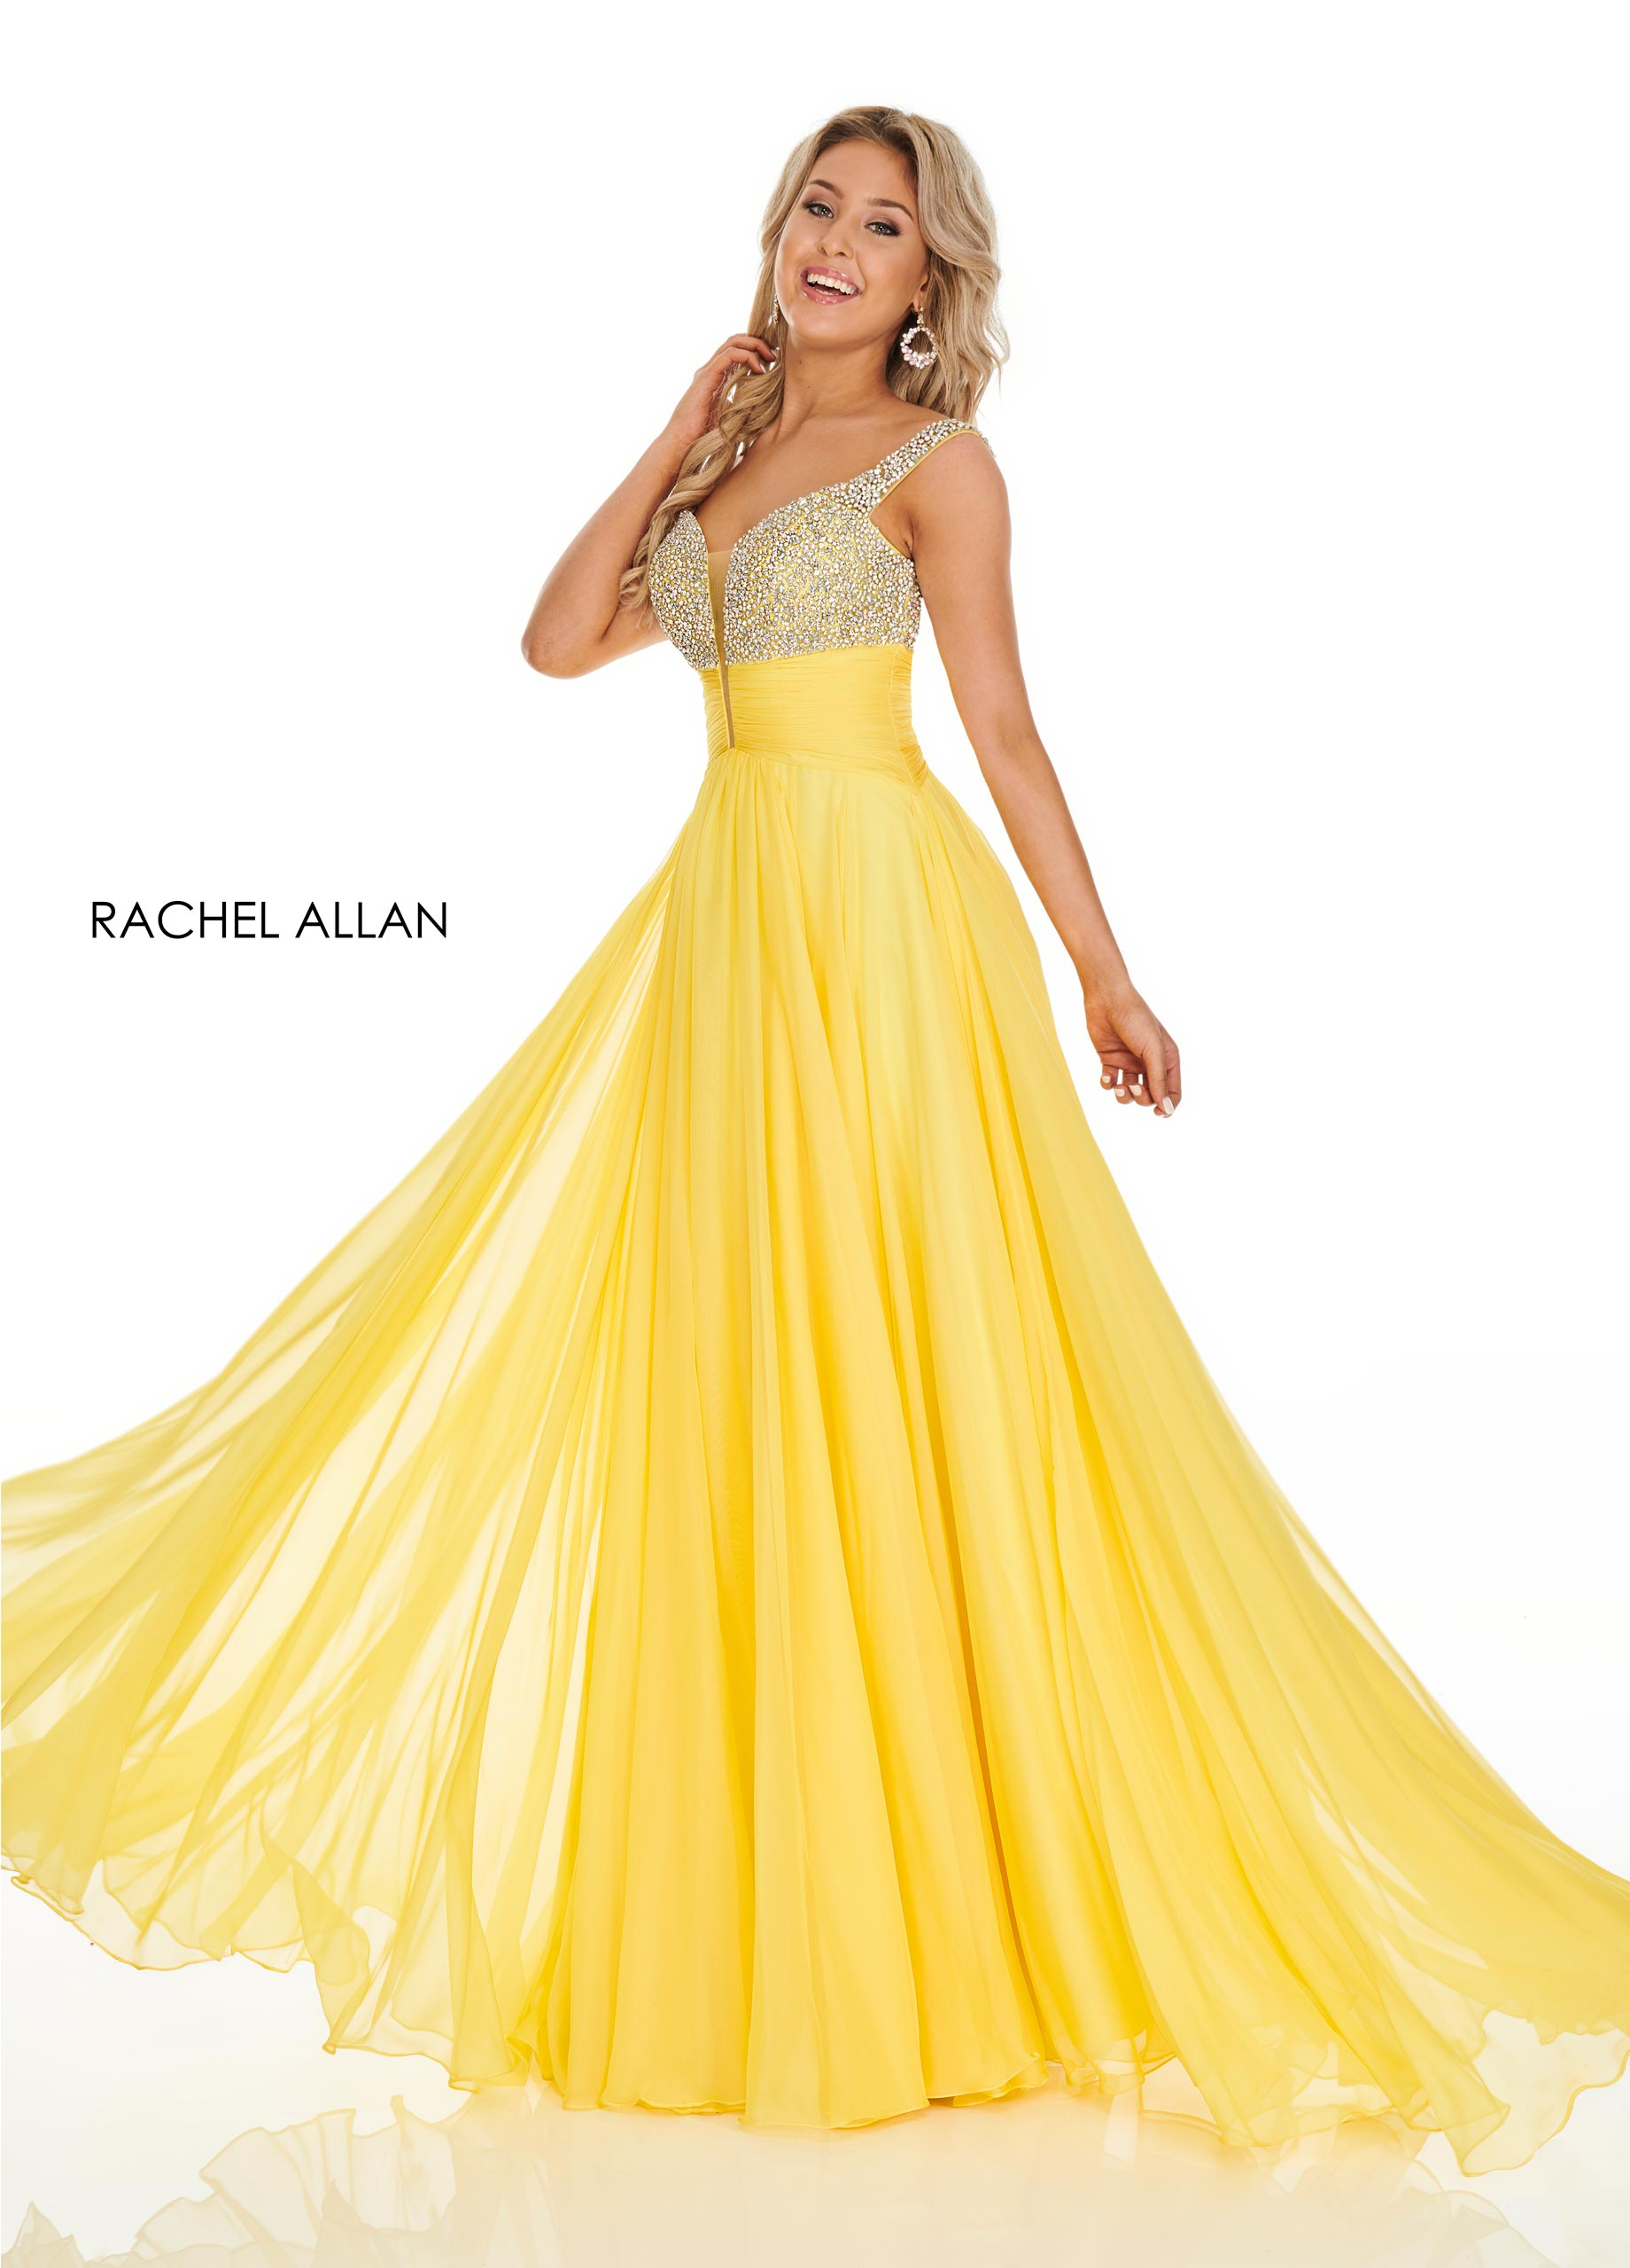 V-Neck A-Line Prom Dresses in Yellow Color